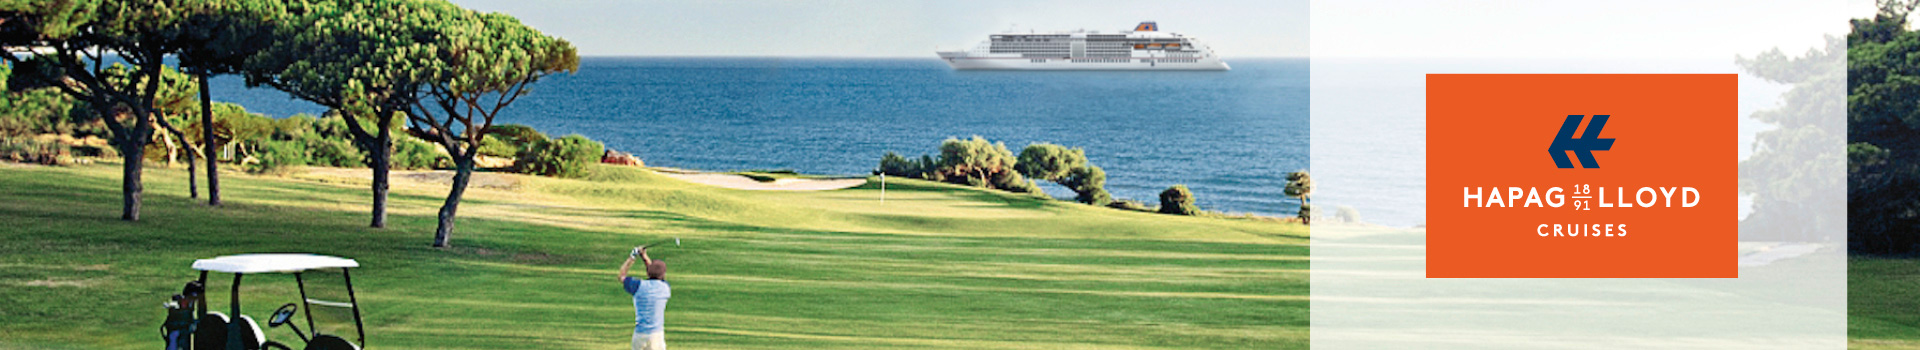 Hapag Lloyd Cruises Header